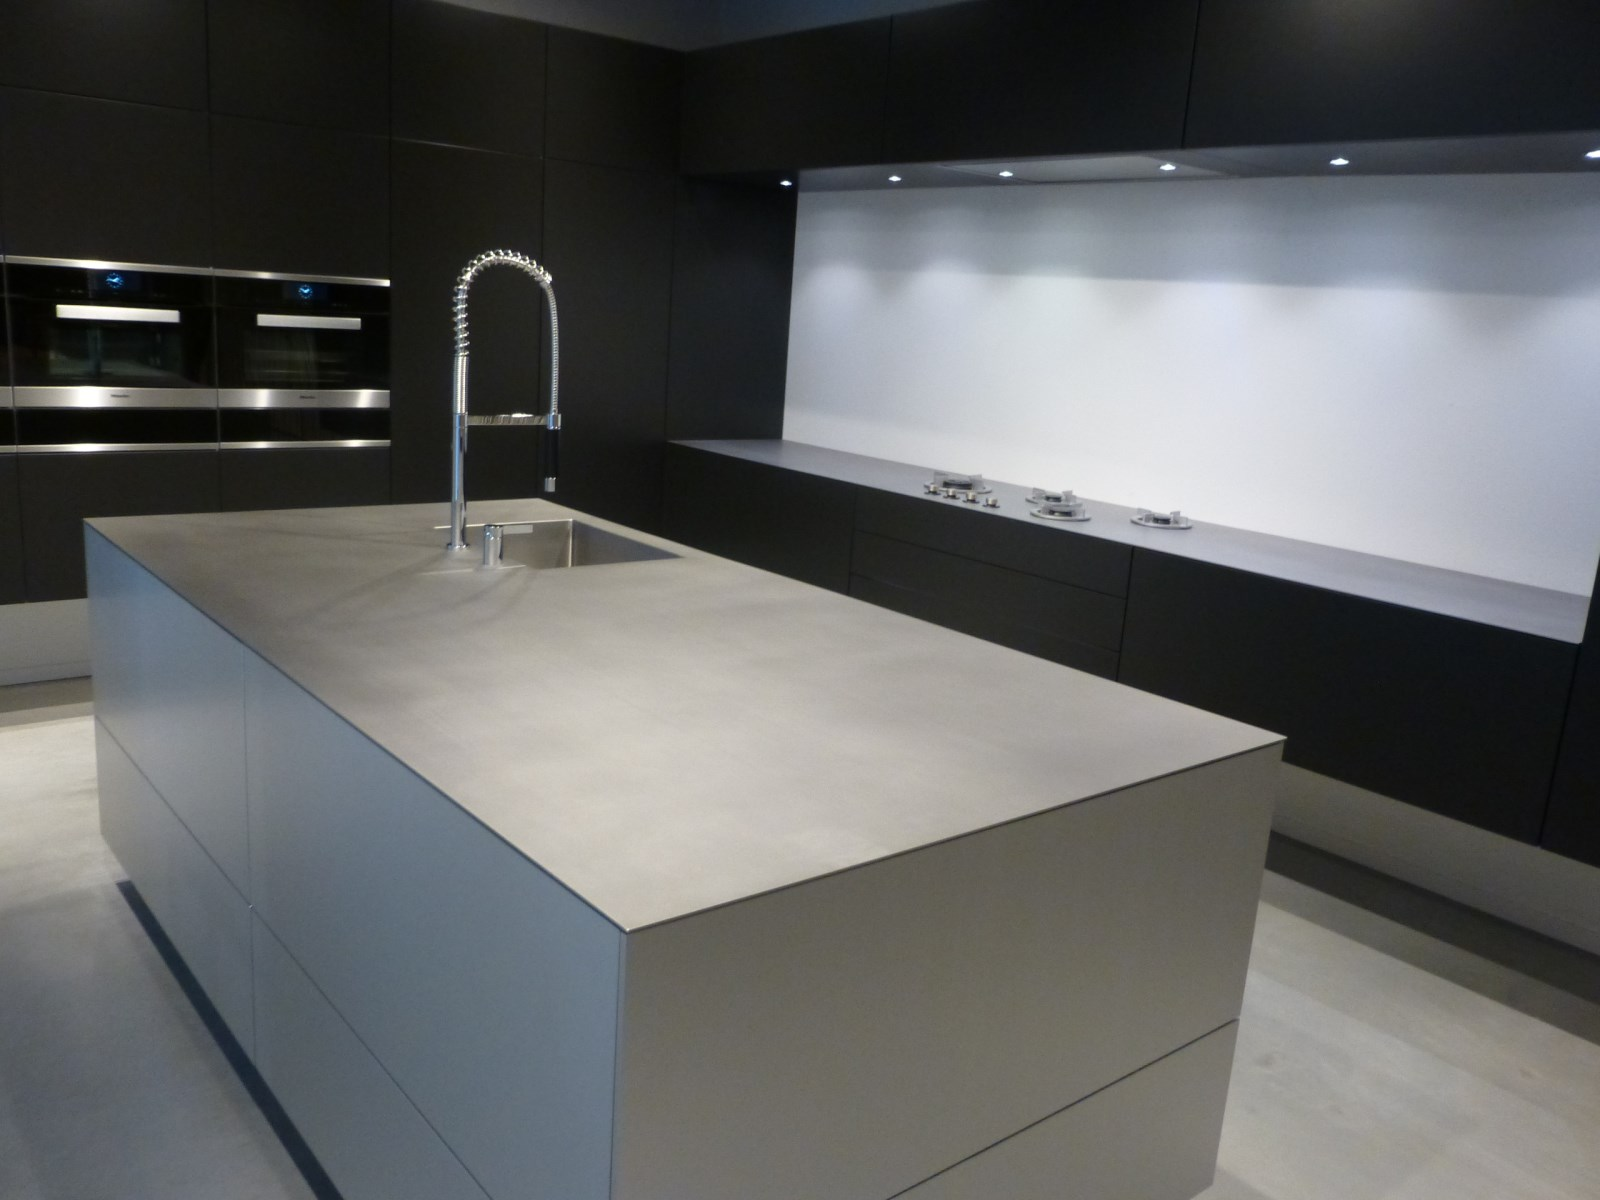 cuisiniste inox aix en provence so inox. Black Bedroom Furniture Sets. Home Design Ideas